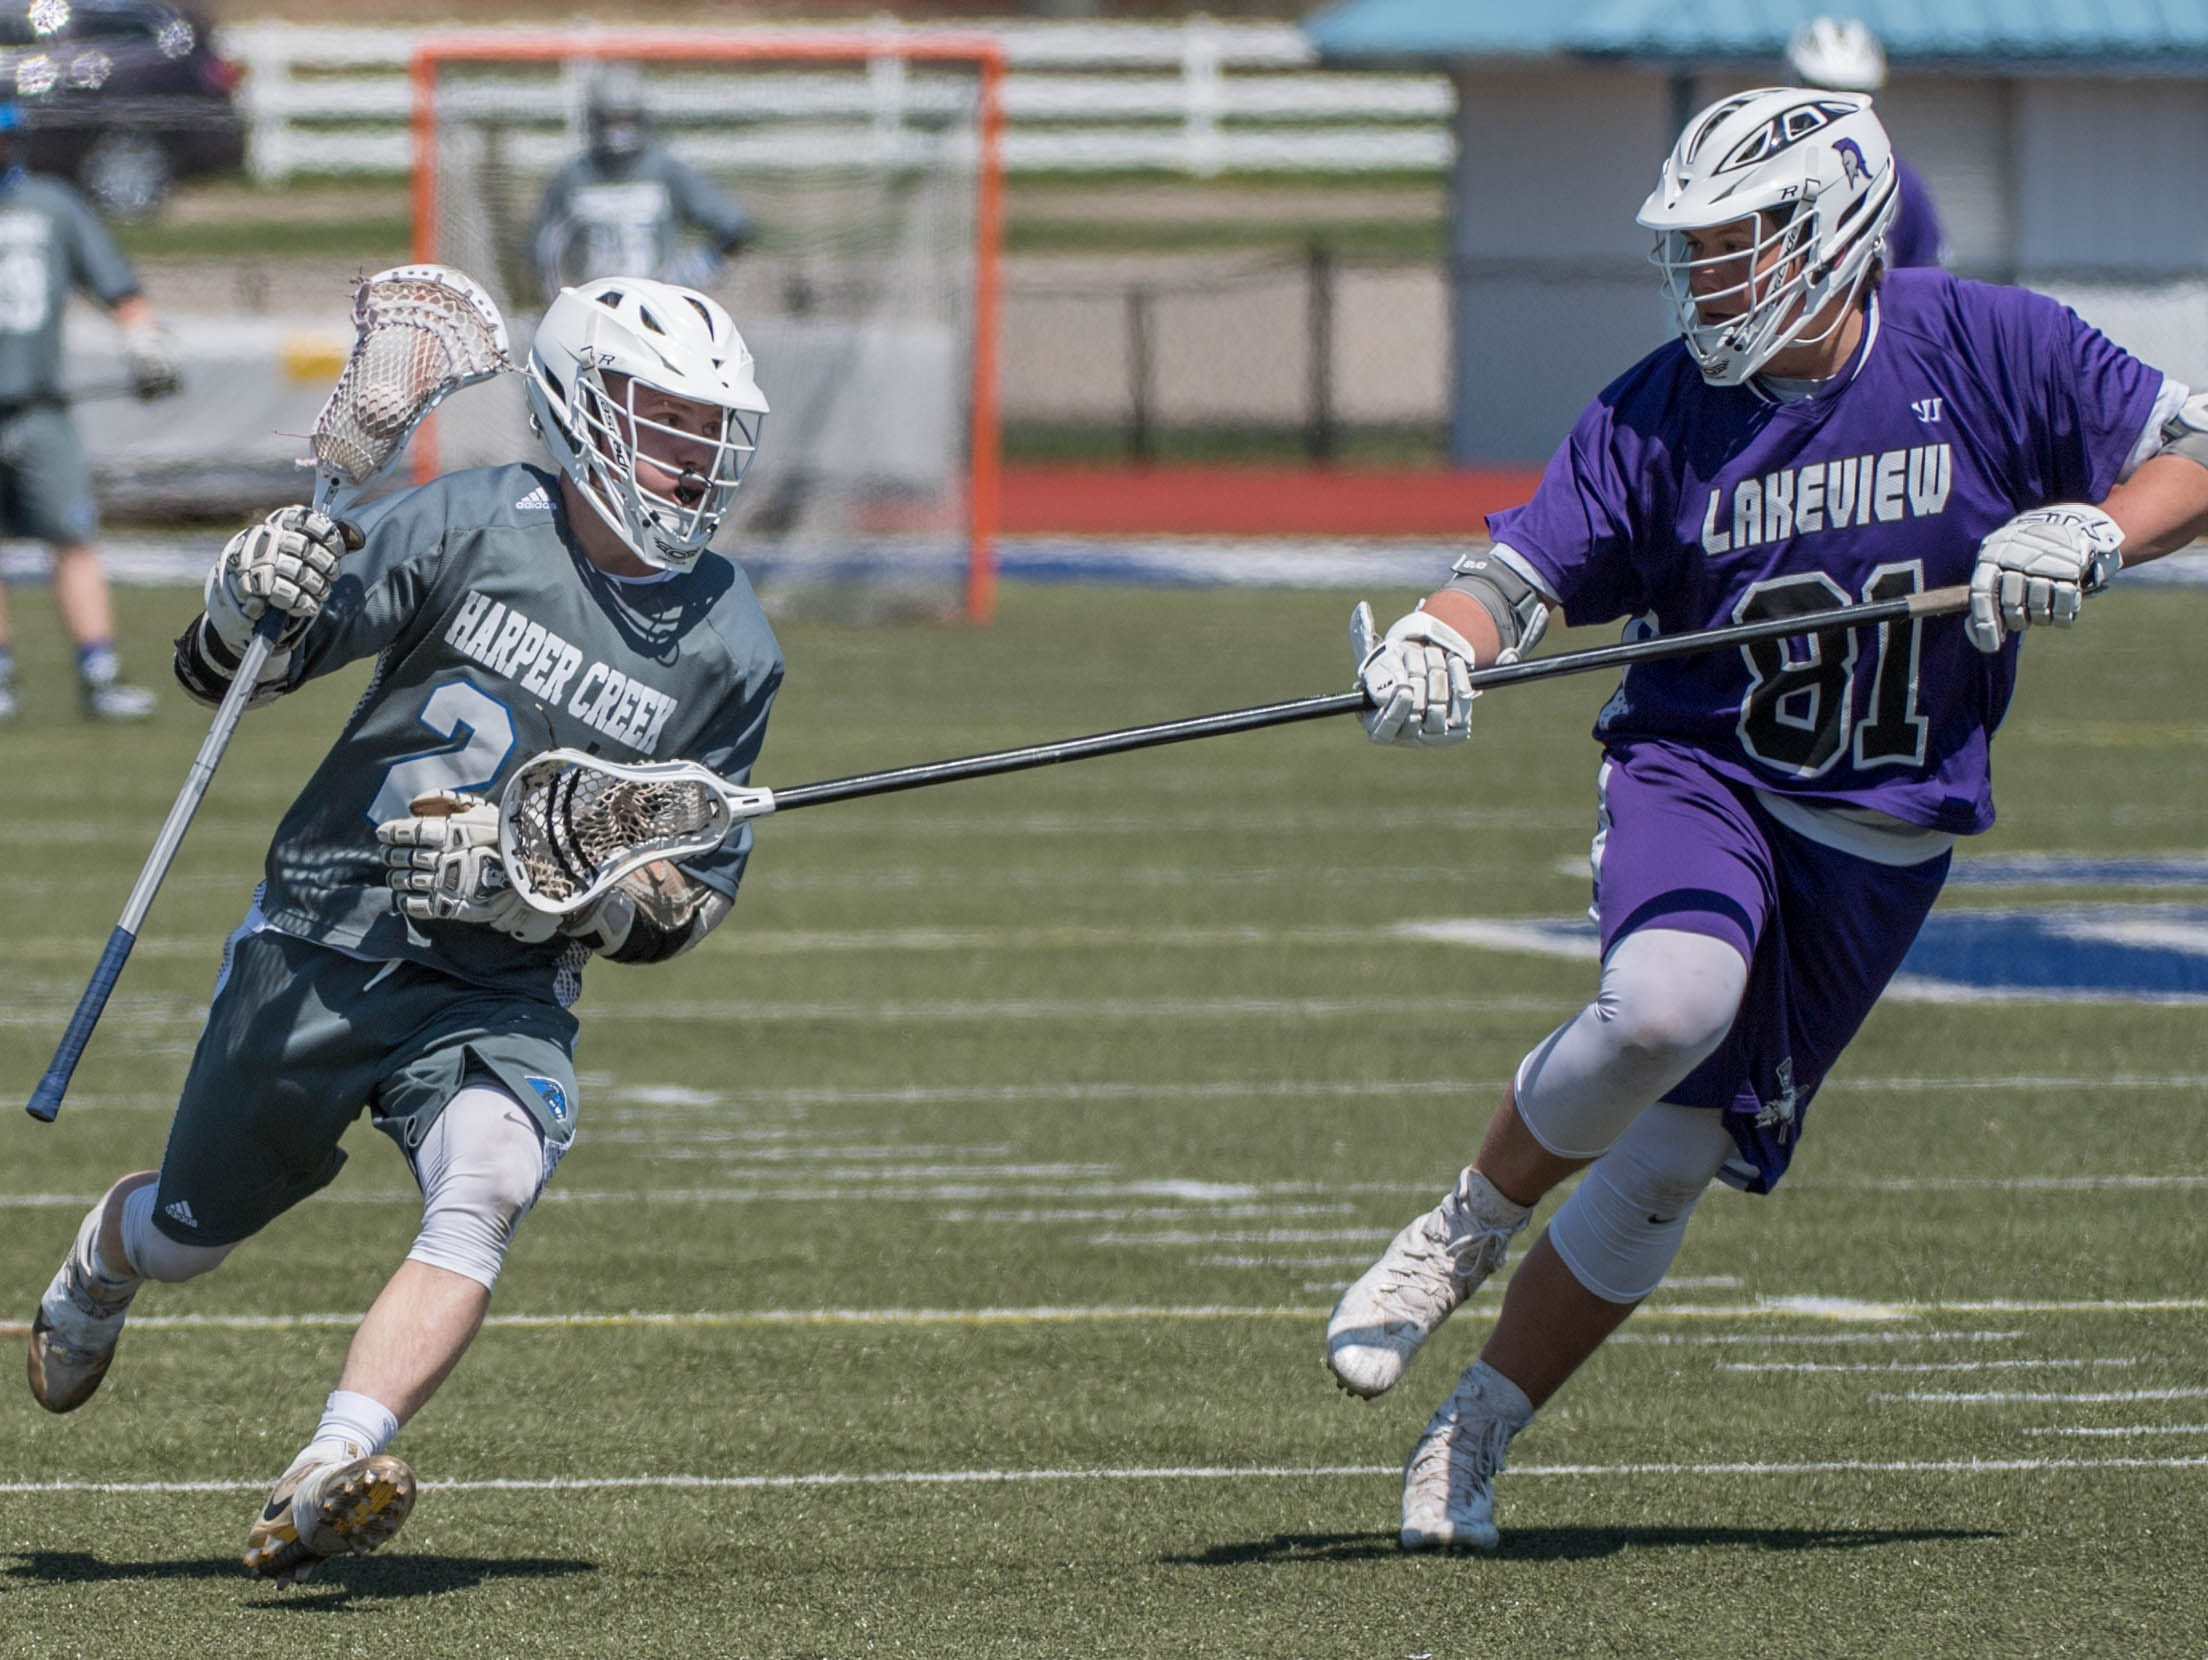 Harper Creek's Connor Gilbert (24) advances the ball against Lakeview's Austin Gayda (81) in the All City Lacrosse Tournament on Saturday.